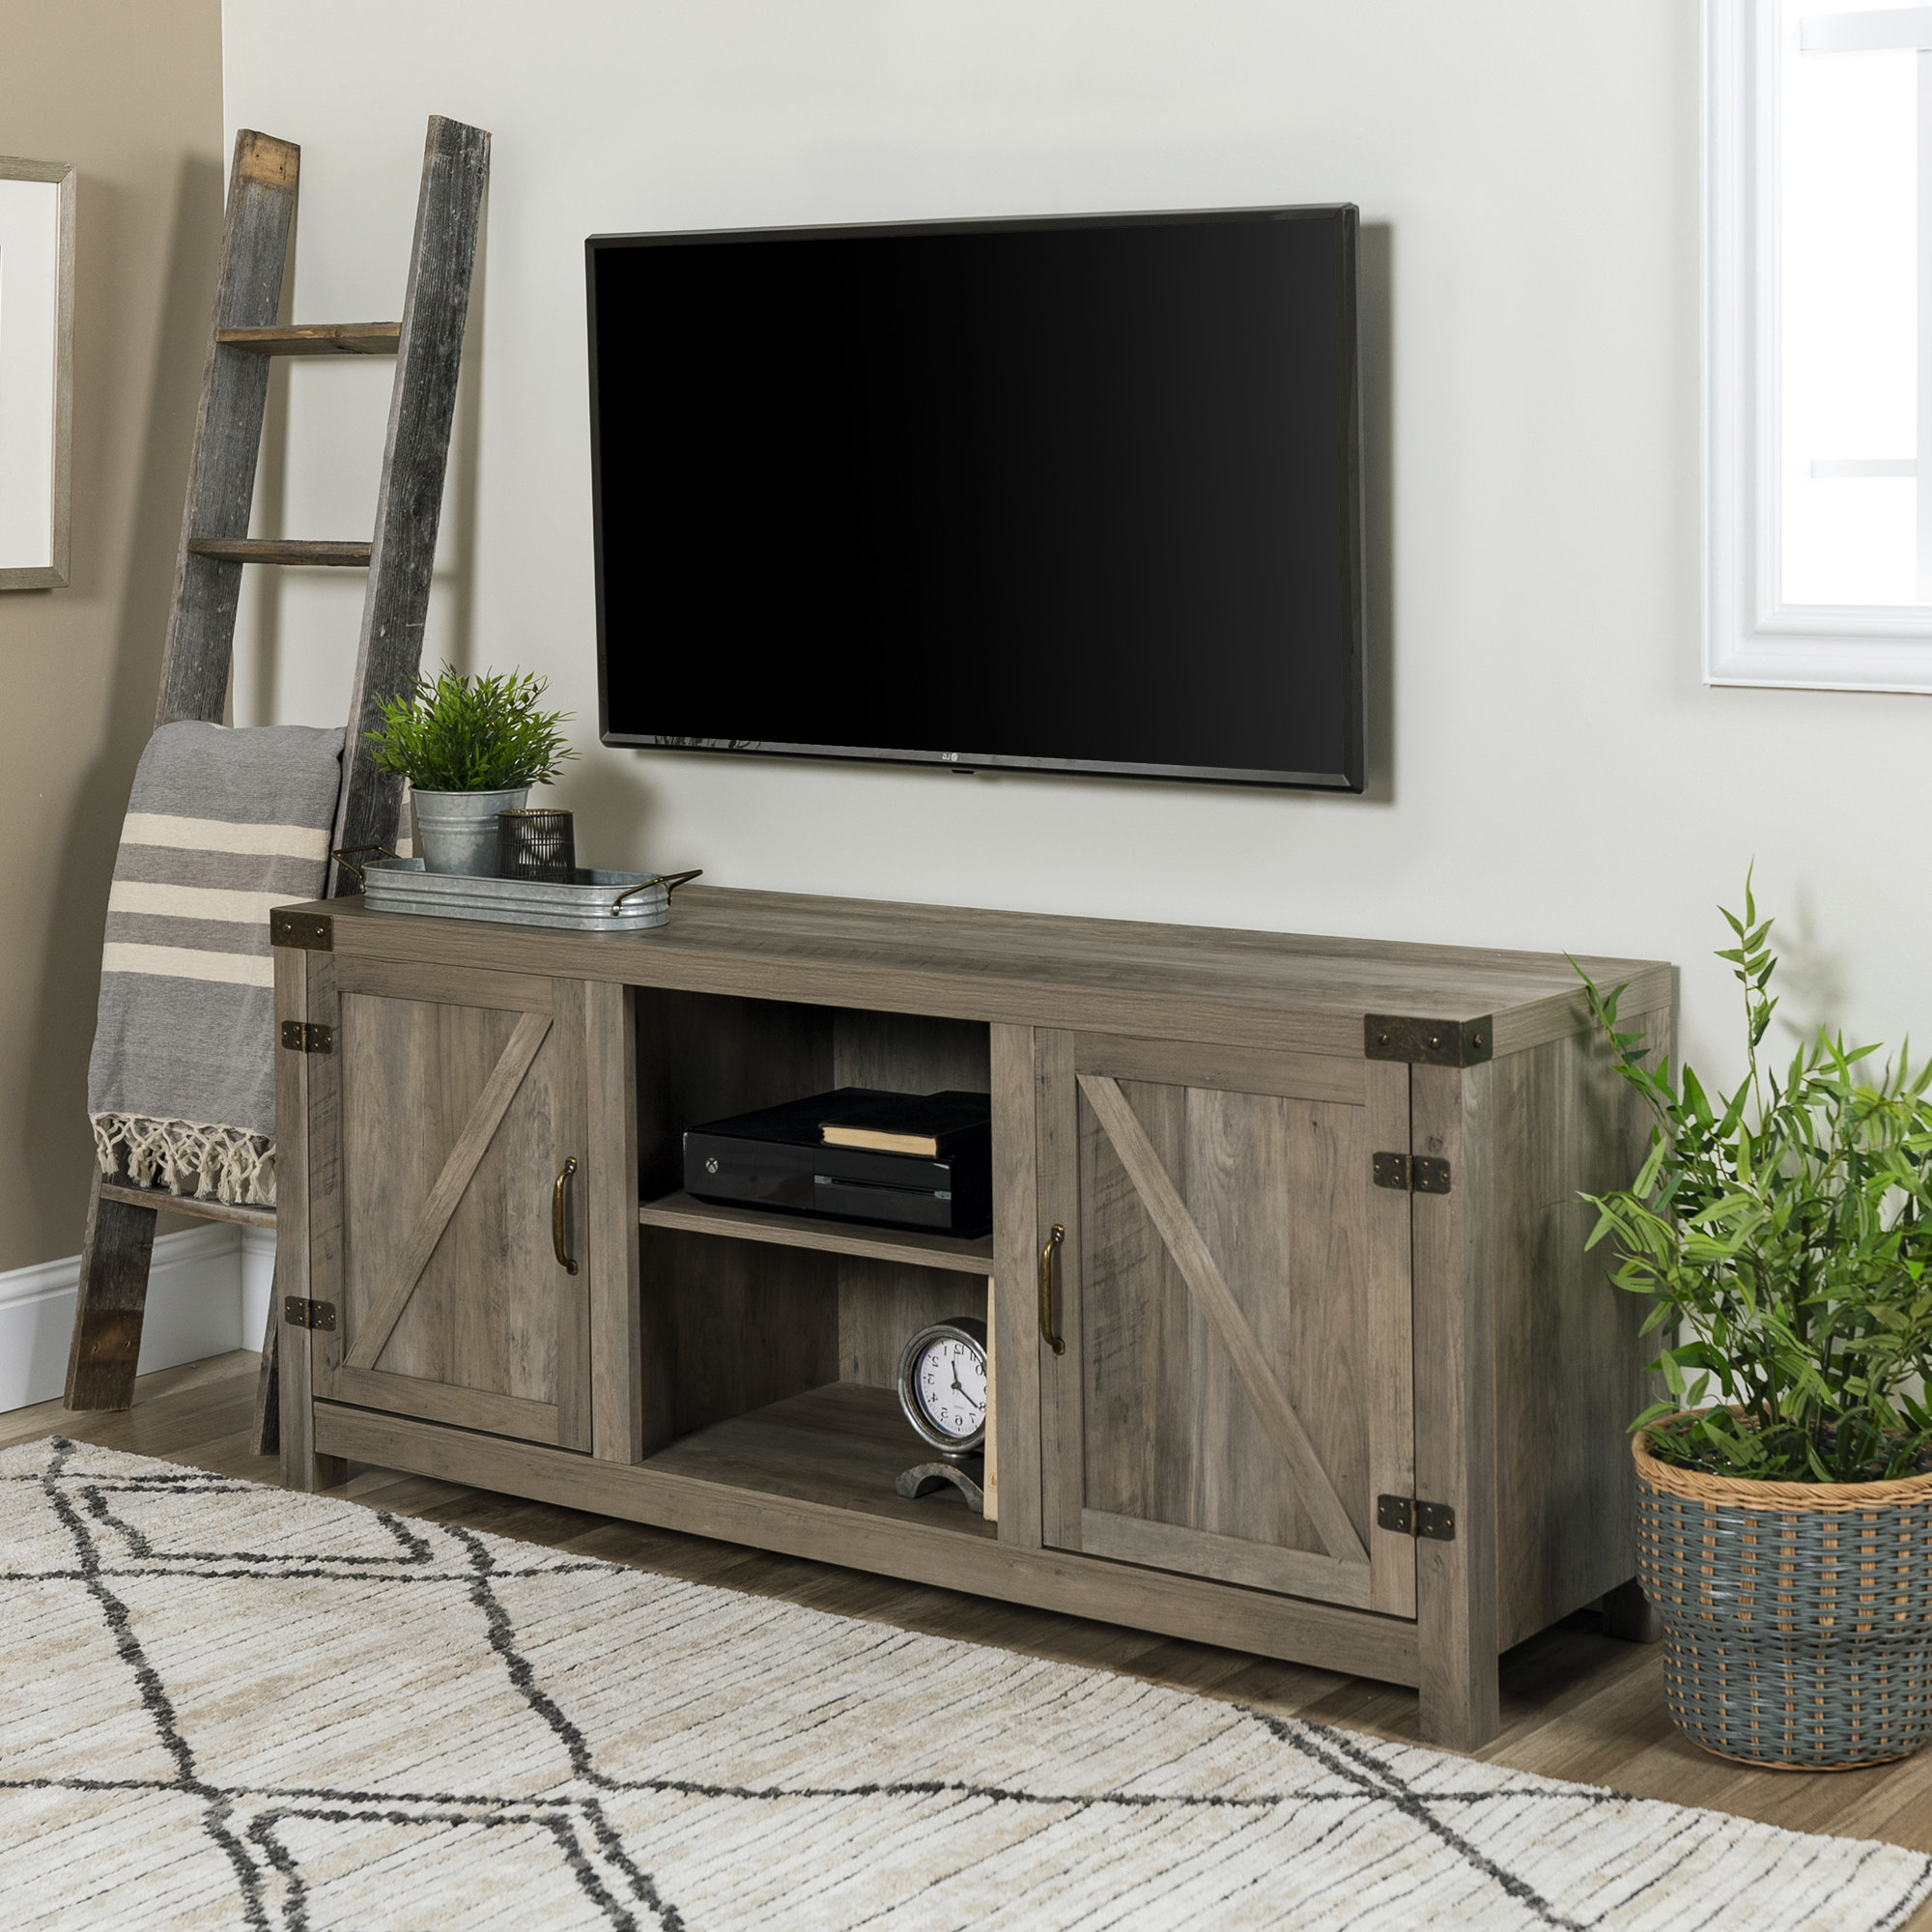 72 Inch Tv Stand | Wayfair Intended For Kenzie 72 Inch Open Display Tv Stands (View 3 of 20)